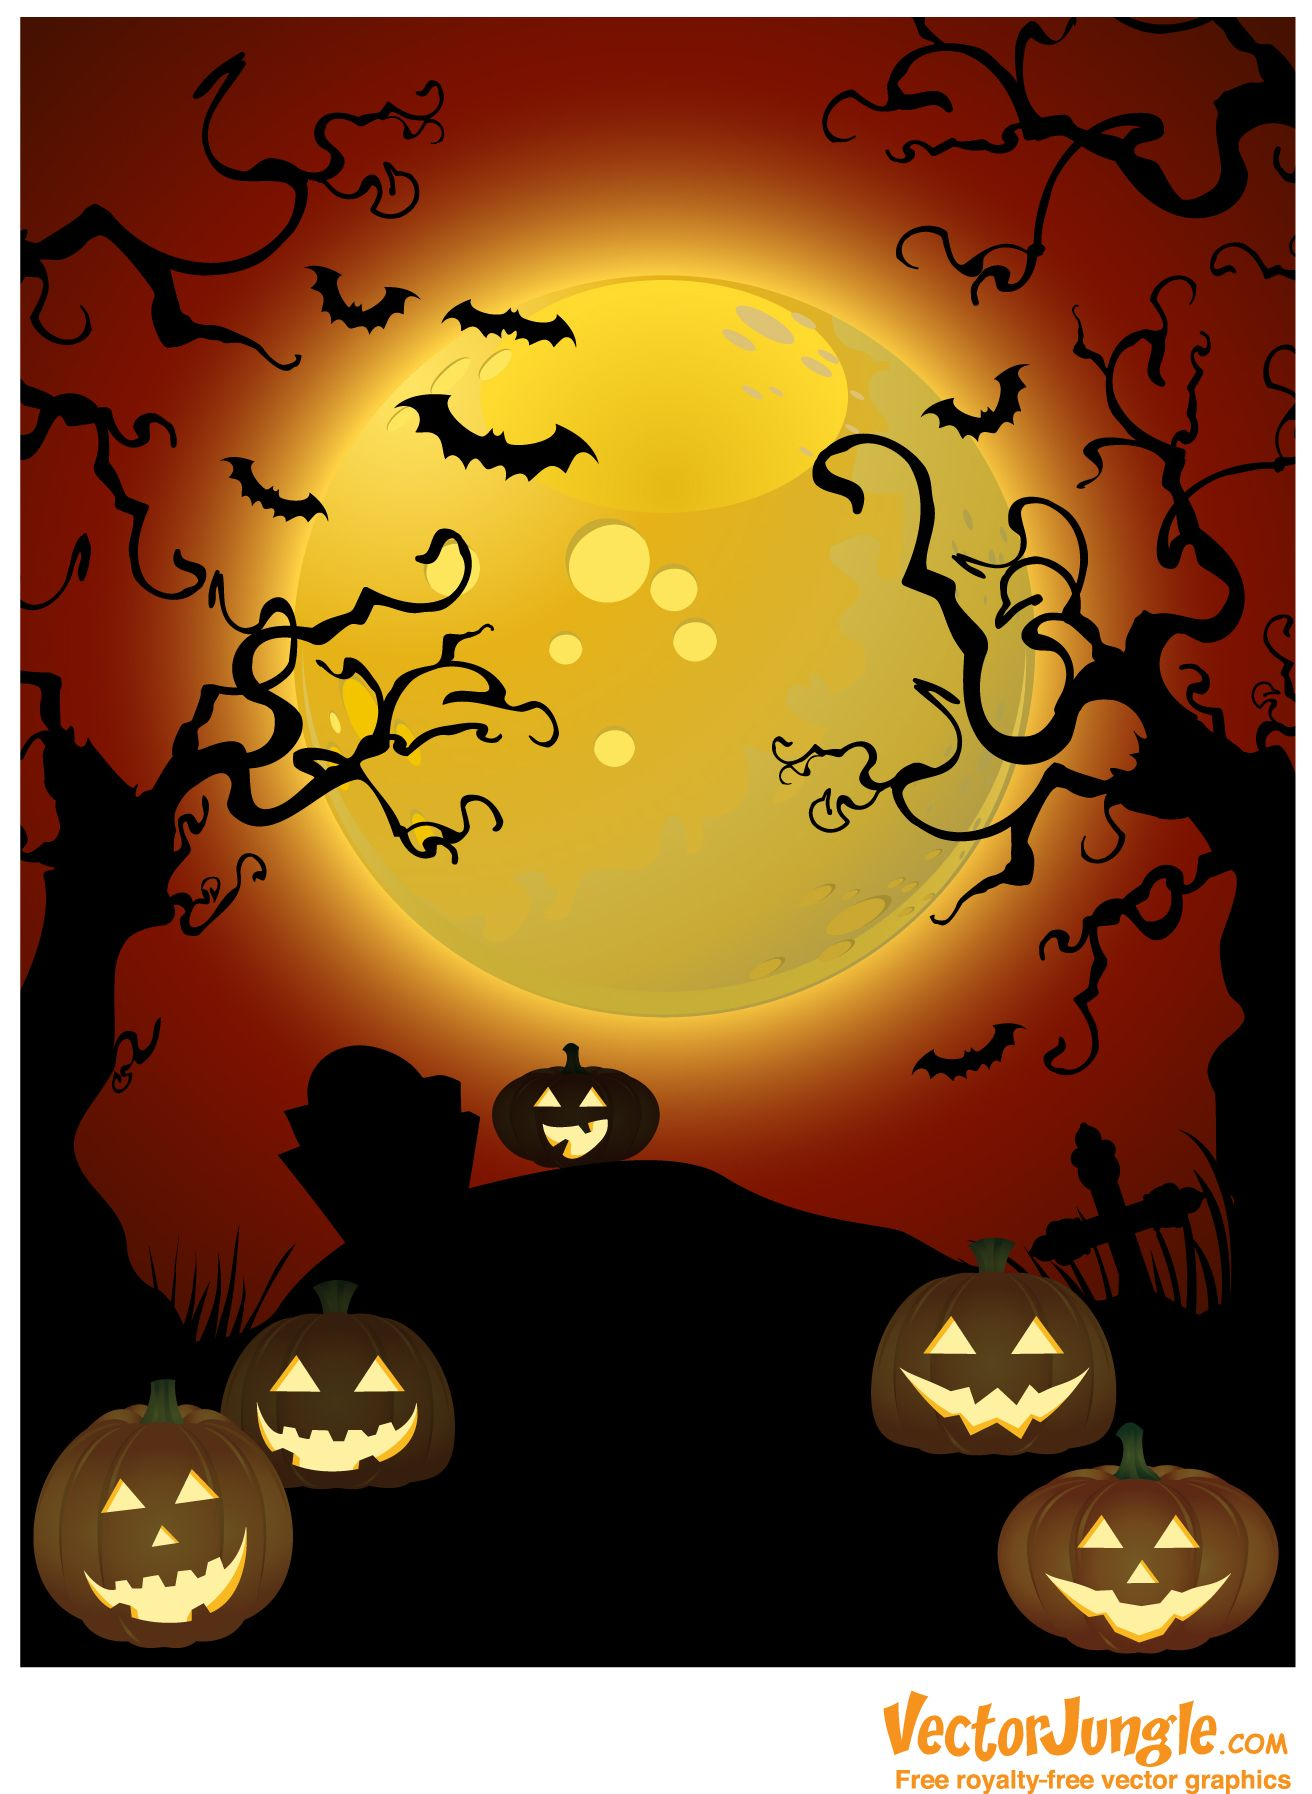 1000+ images about Halloweeen Images on Pinterest | Pumpkins ...